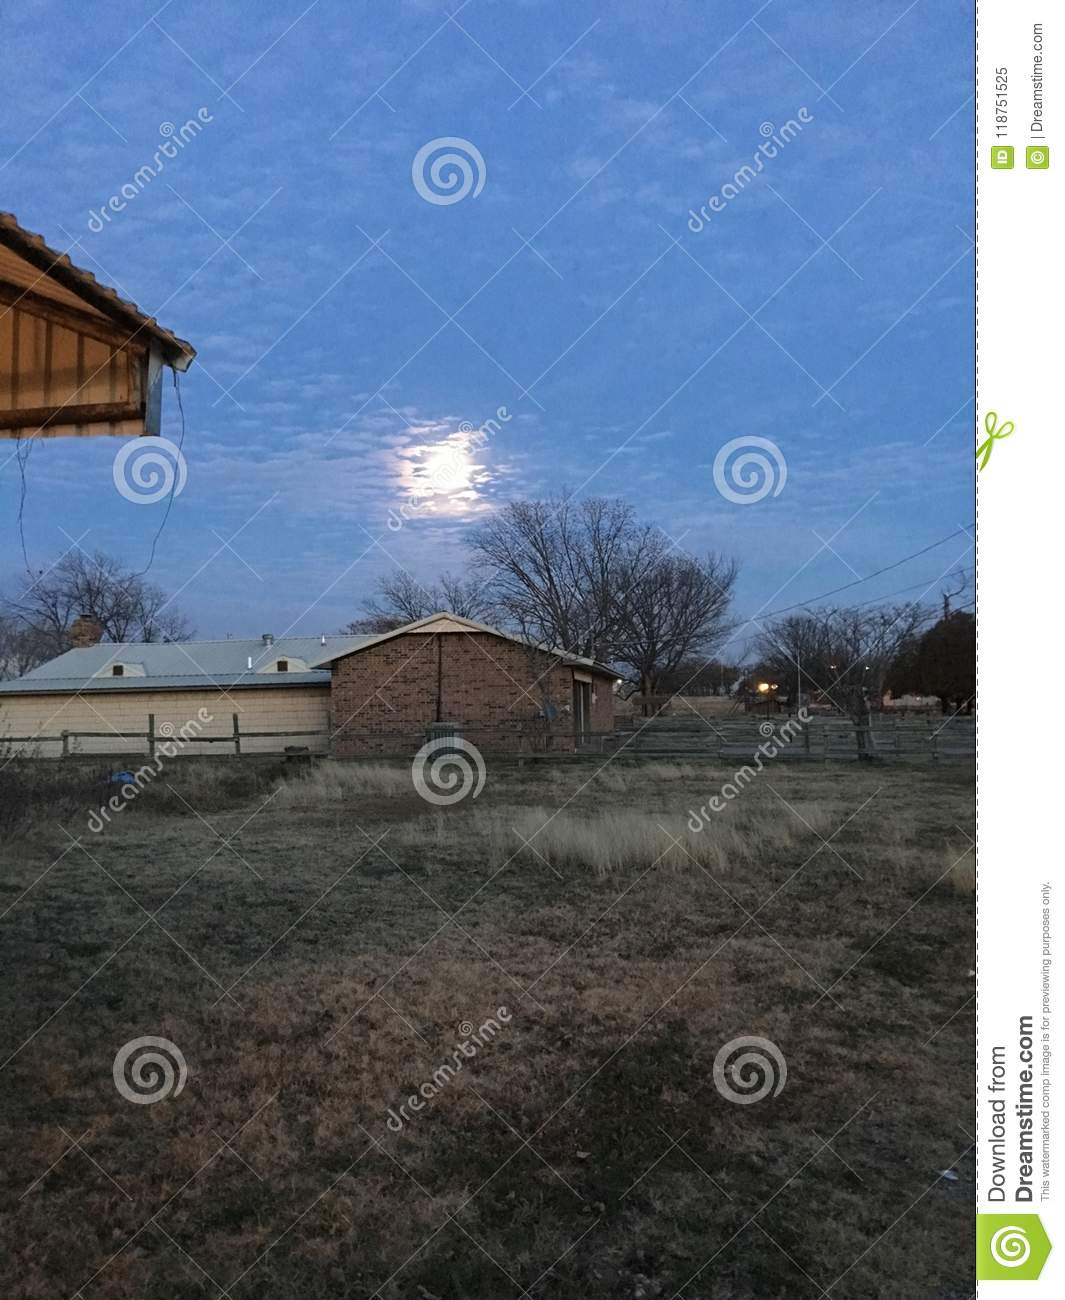 Harvest moon stock image  Image of moonlight, home, sweet - 118751525